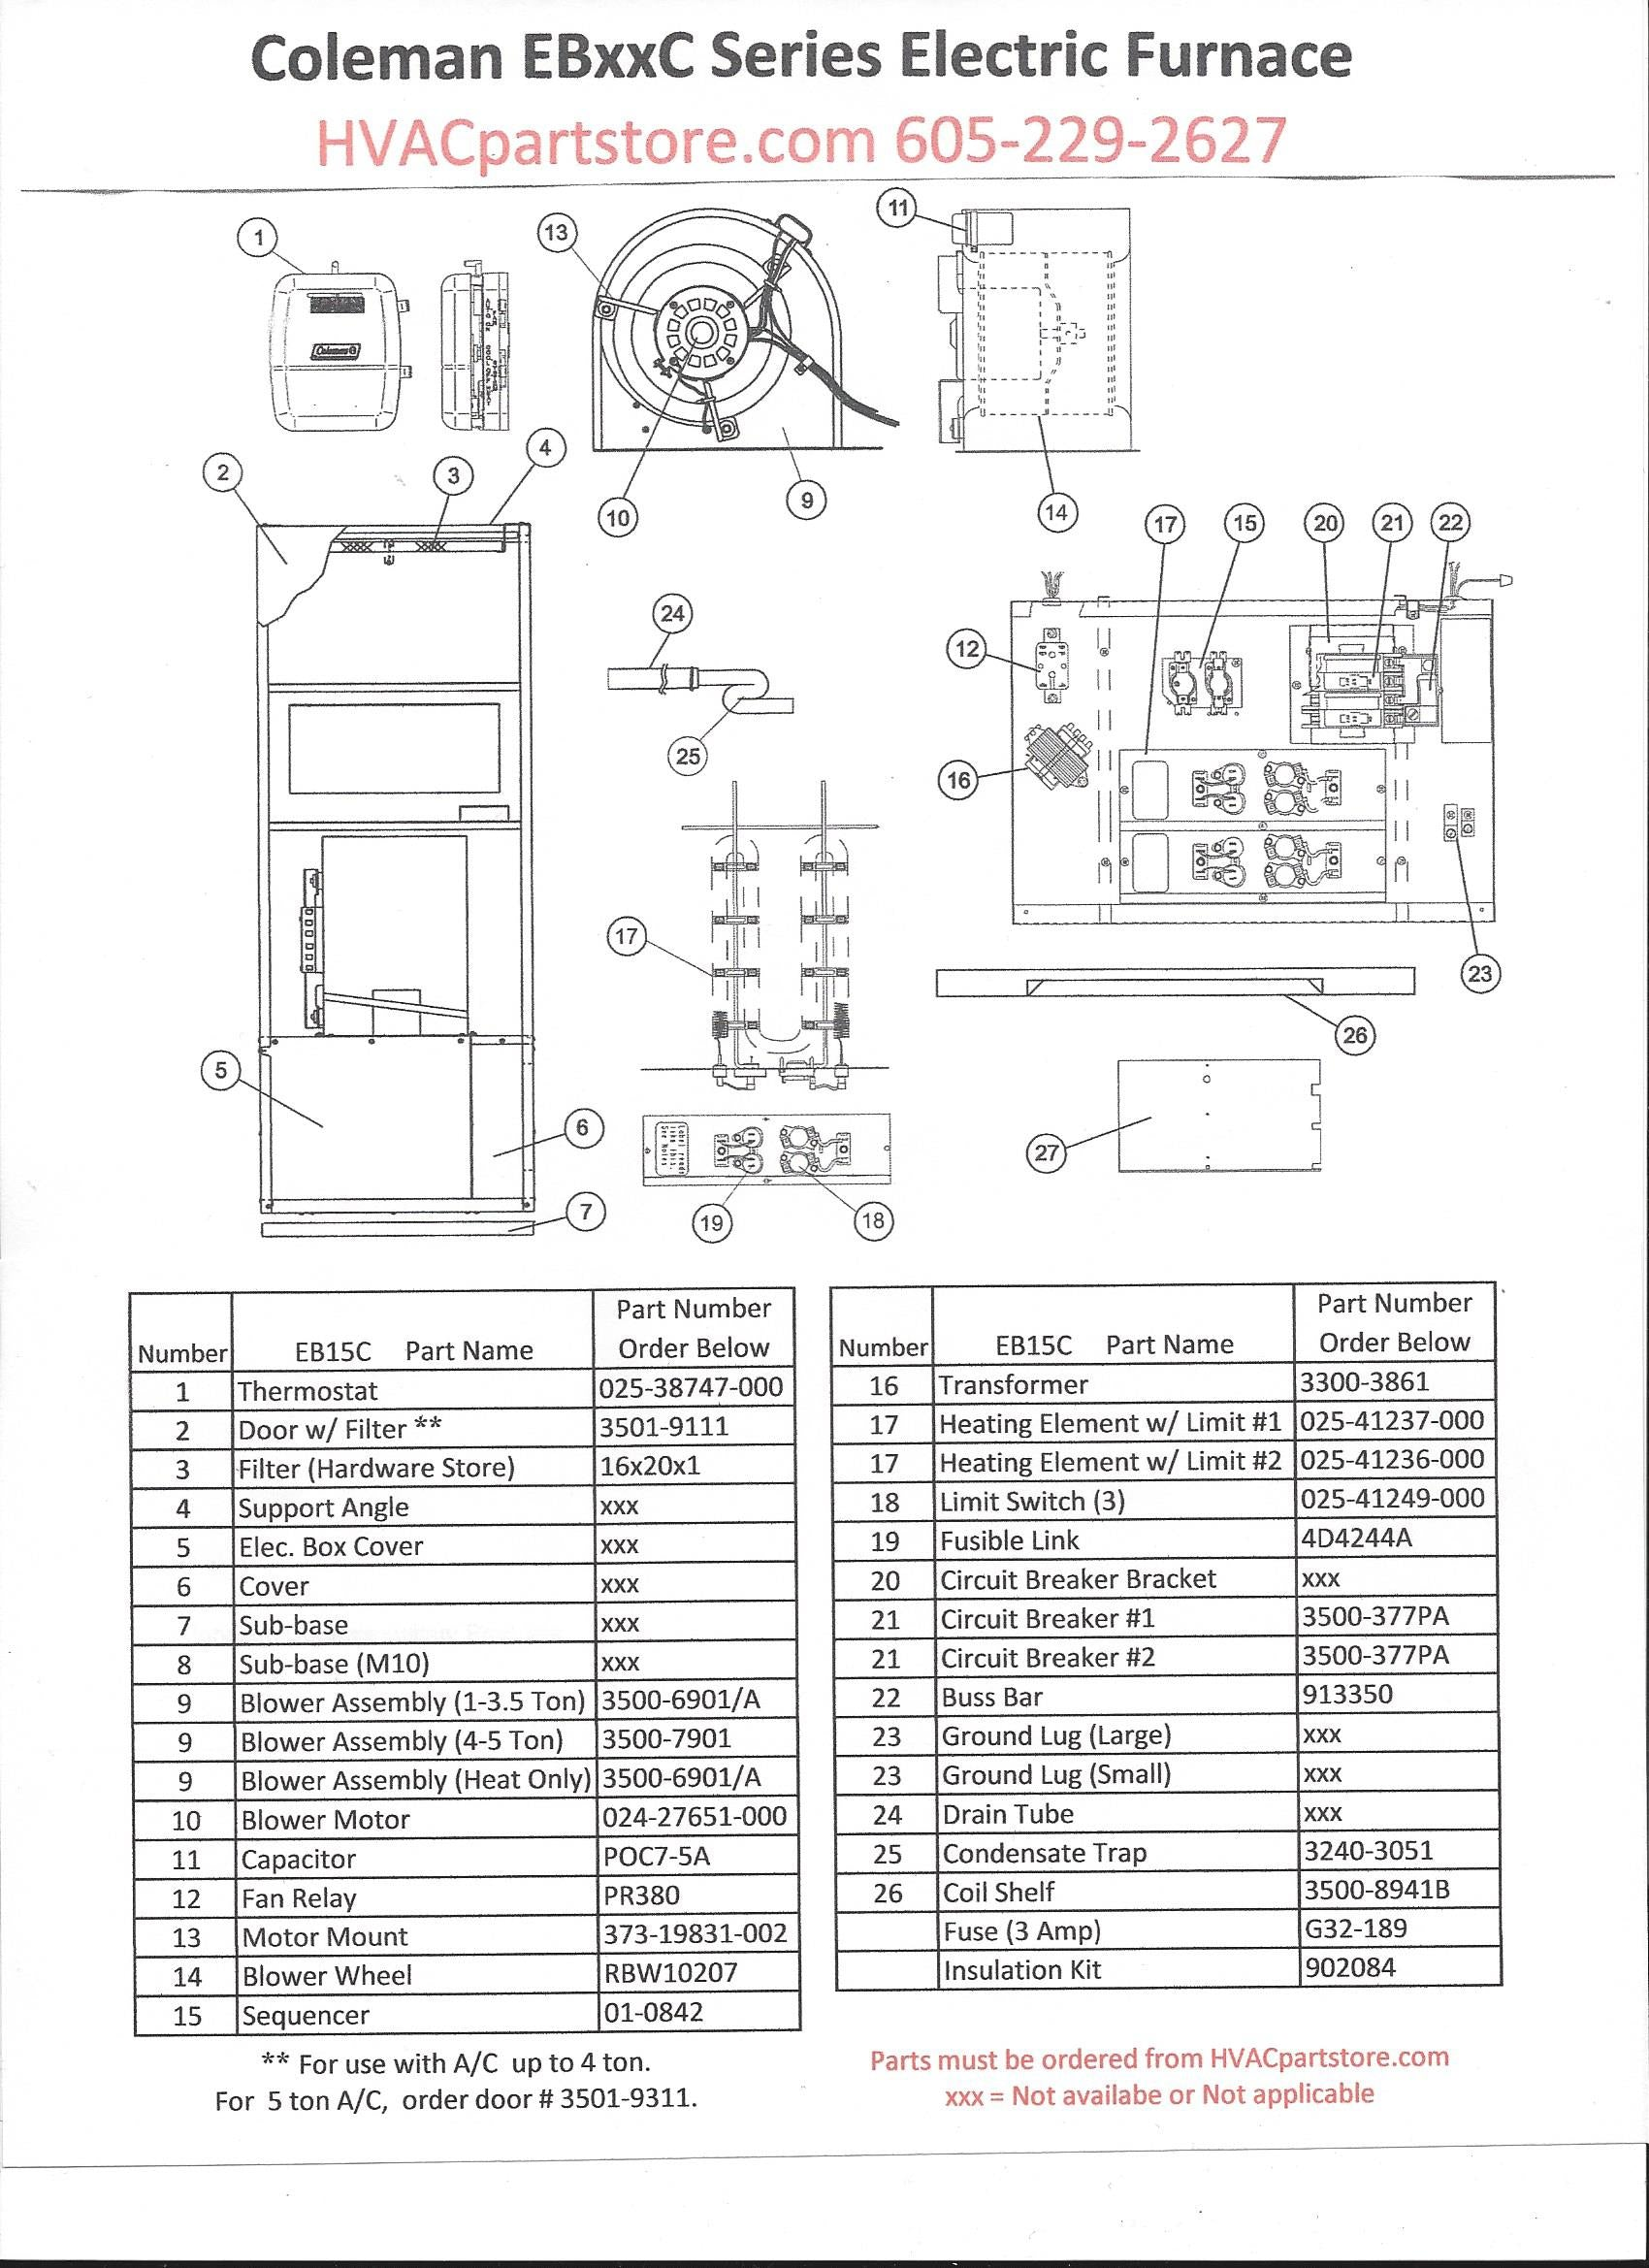 EB15Cparts?13130982346353216068 eb15c coleman electric furnace parts hvacpartstore Gas Furnace Wiring Diagram at bakdesigns.co